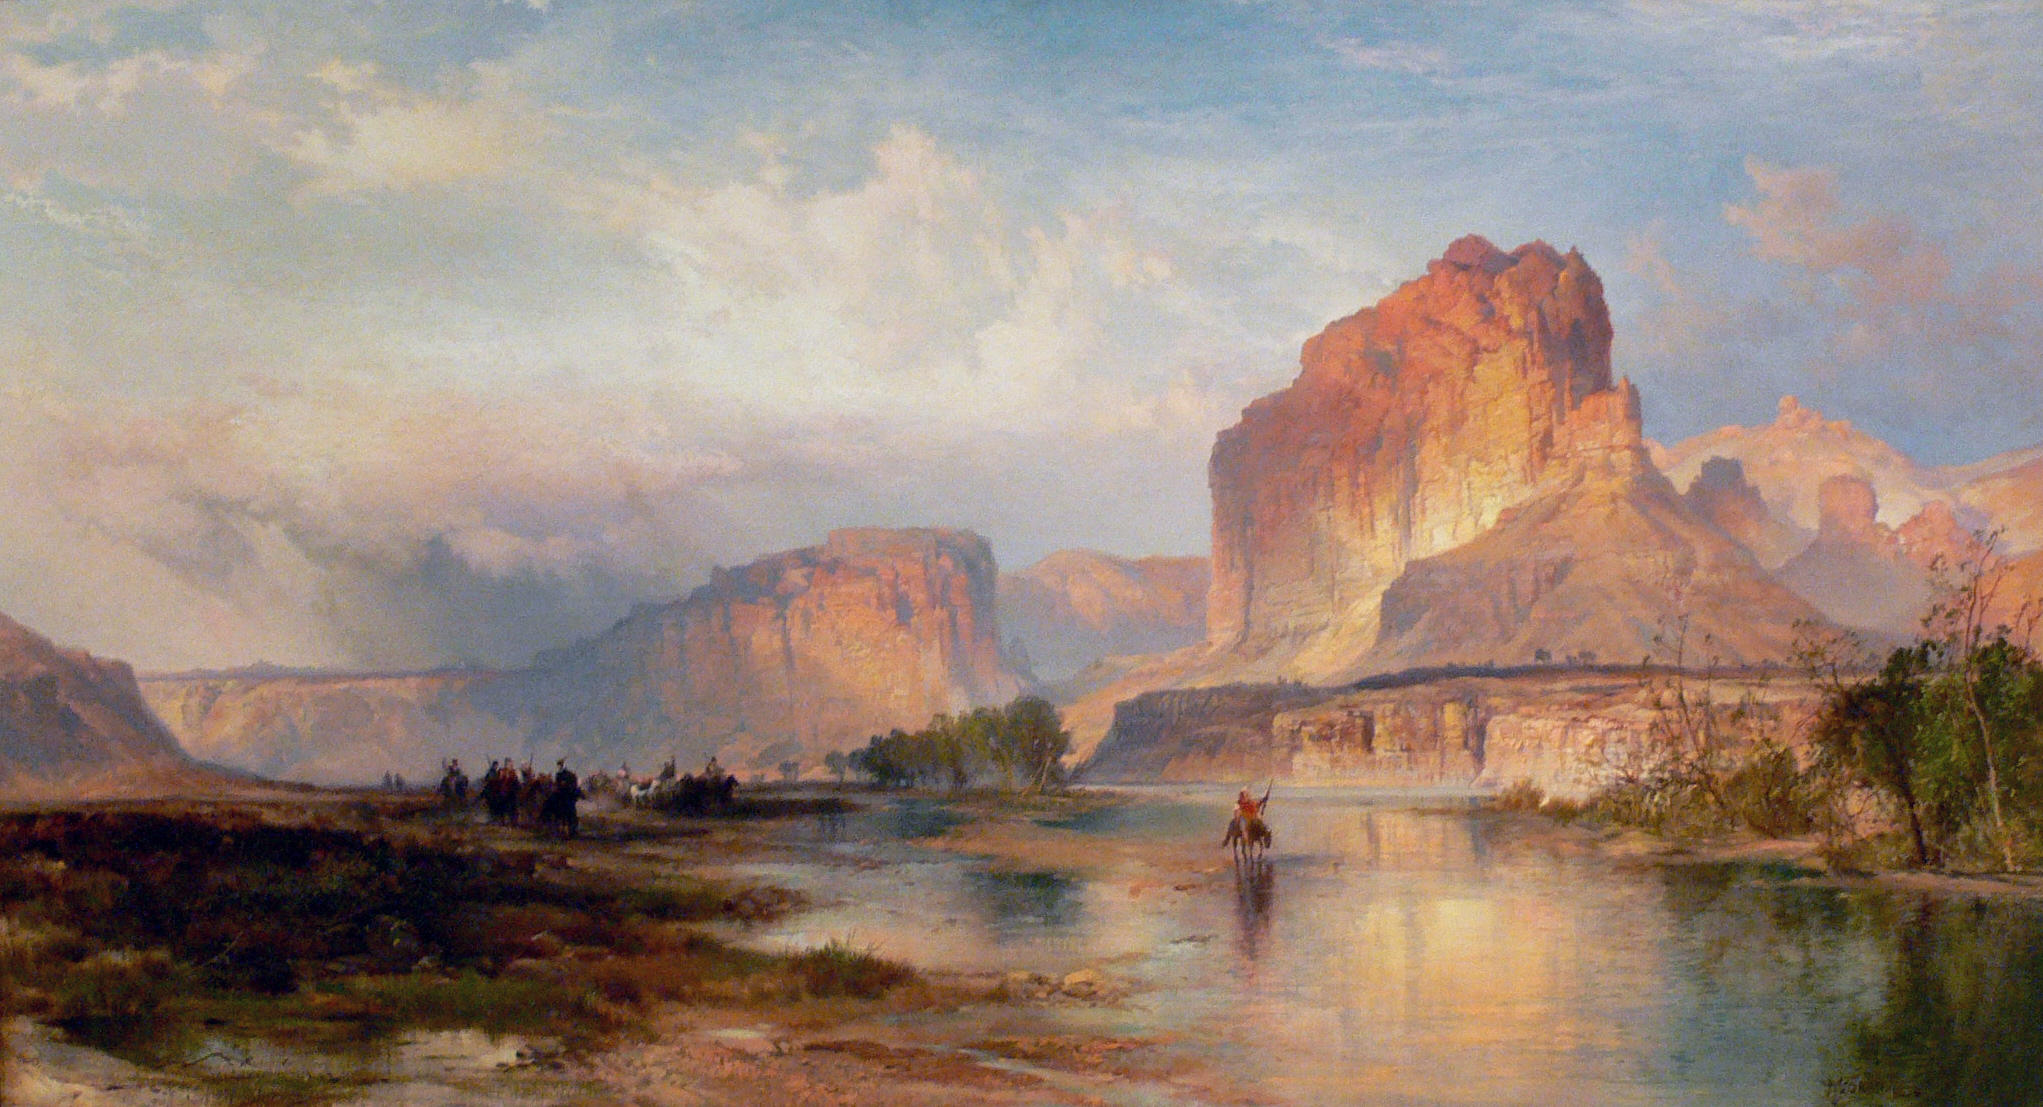 Thomas_Moran_Cliffs_of_Green_River_Amon_Carter_Museum.jpg (2043×1107)